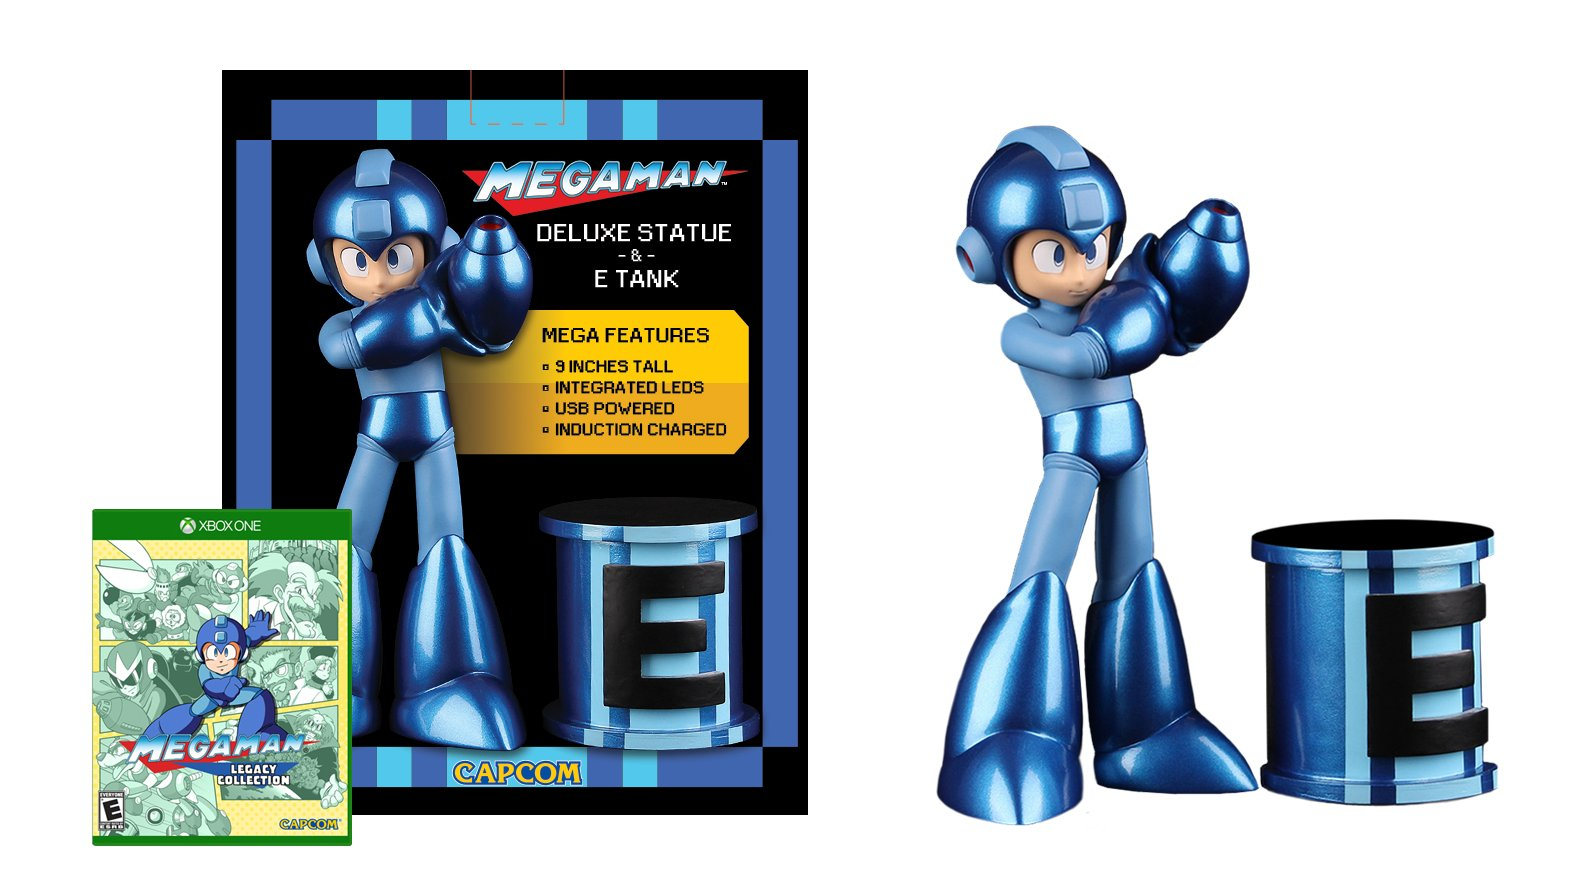 Mega Man Statue & E-Tank with Mega Man Legacy Collection Game - Xbox One Special Edition by Capcom (Image #1)